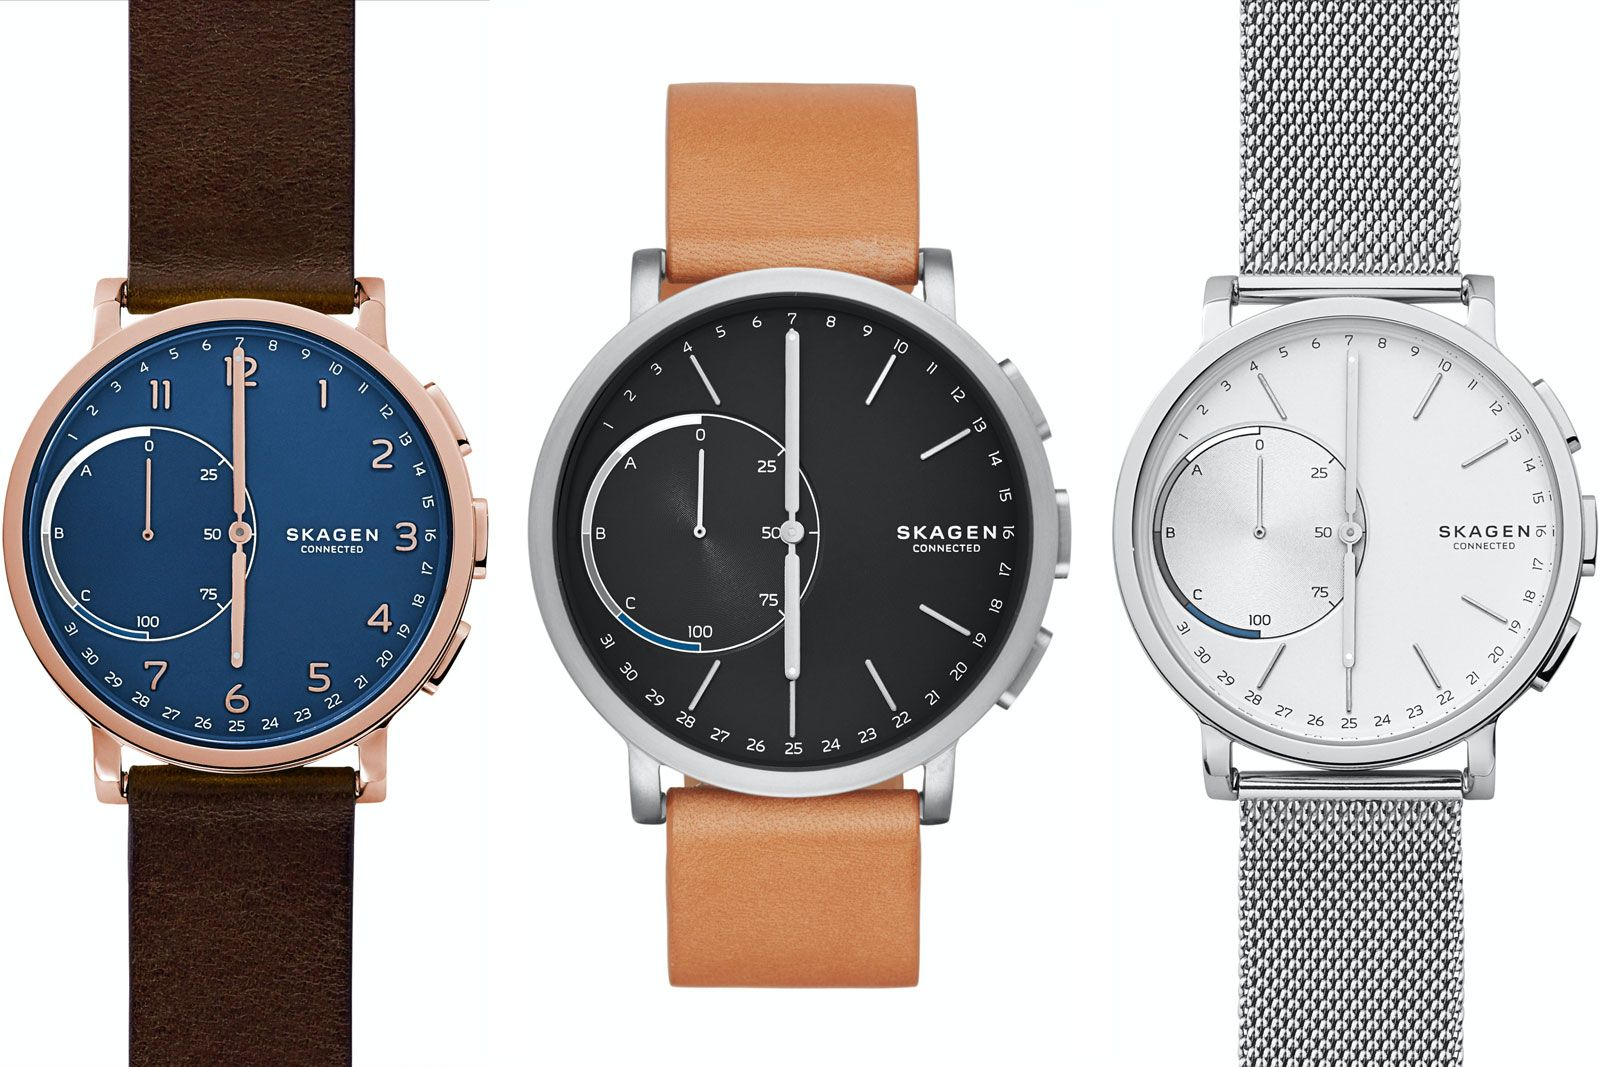 The 25 best smartwatch news ideas on pinterest vin dicarlo dragonball z online and pandora s box system